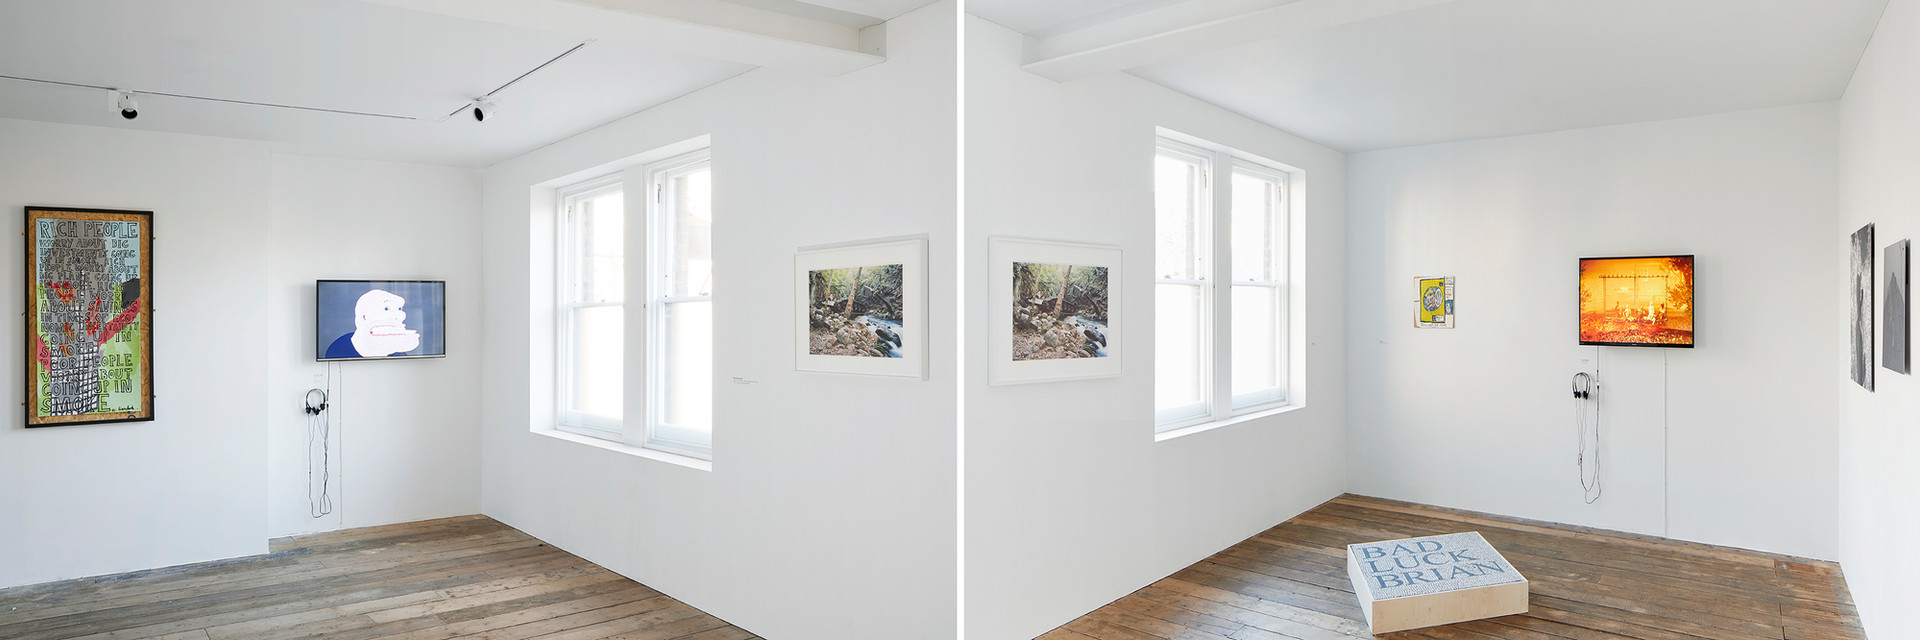 Installation view: Bloomberg New Contemporaries, South London Gallery. Photo: Andy Stagg. Image courtesy of New Contemporaries